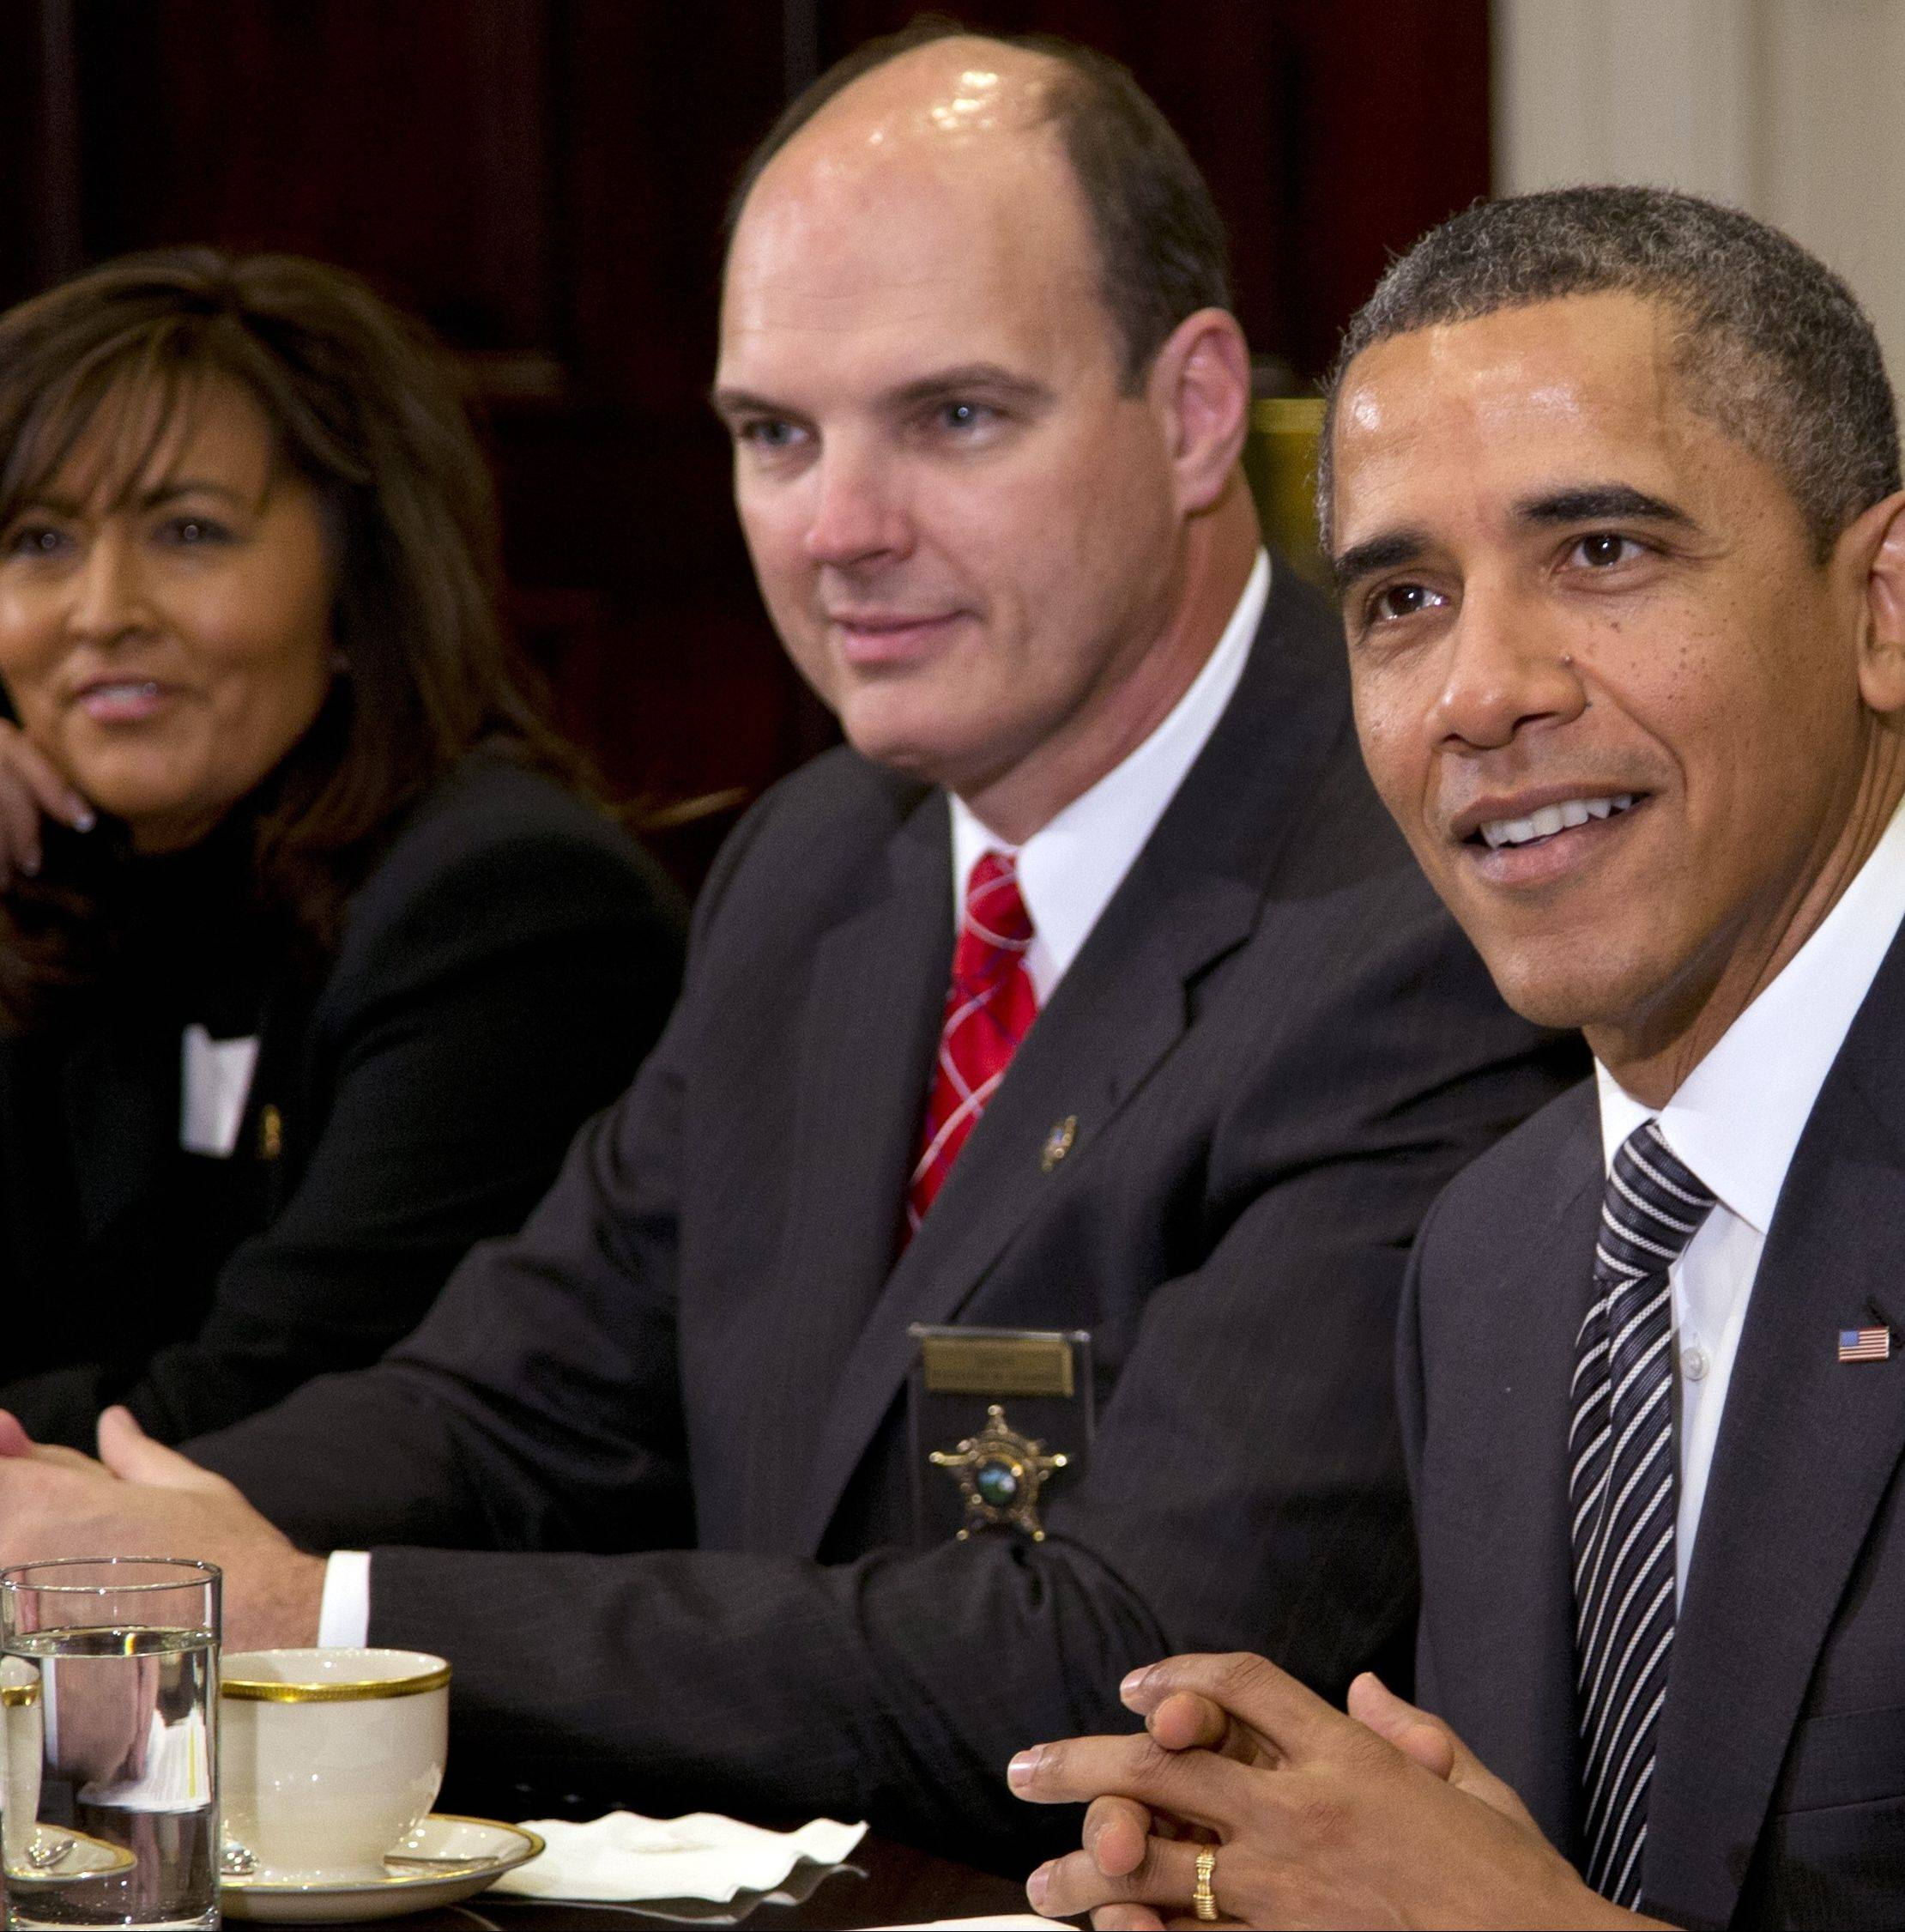 President Barack Obama meets with police chiefs and county sheriffs Monday to discuss gun violence. From left are Minneapolis Police Chief Janee Harteau and Hennepin County (Minn.) Sheriff Richard W. Stanek.